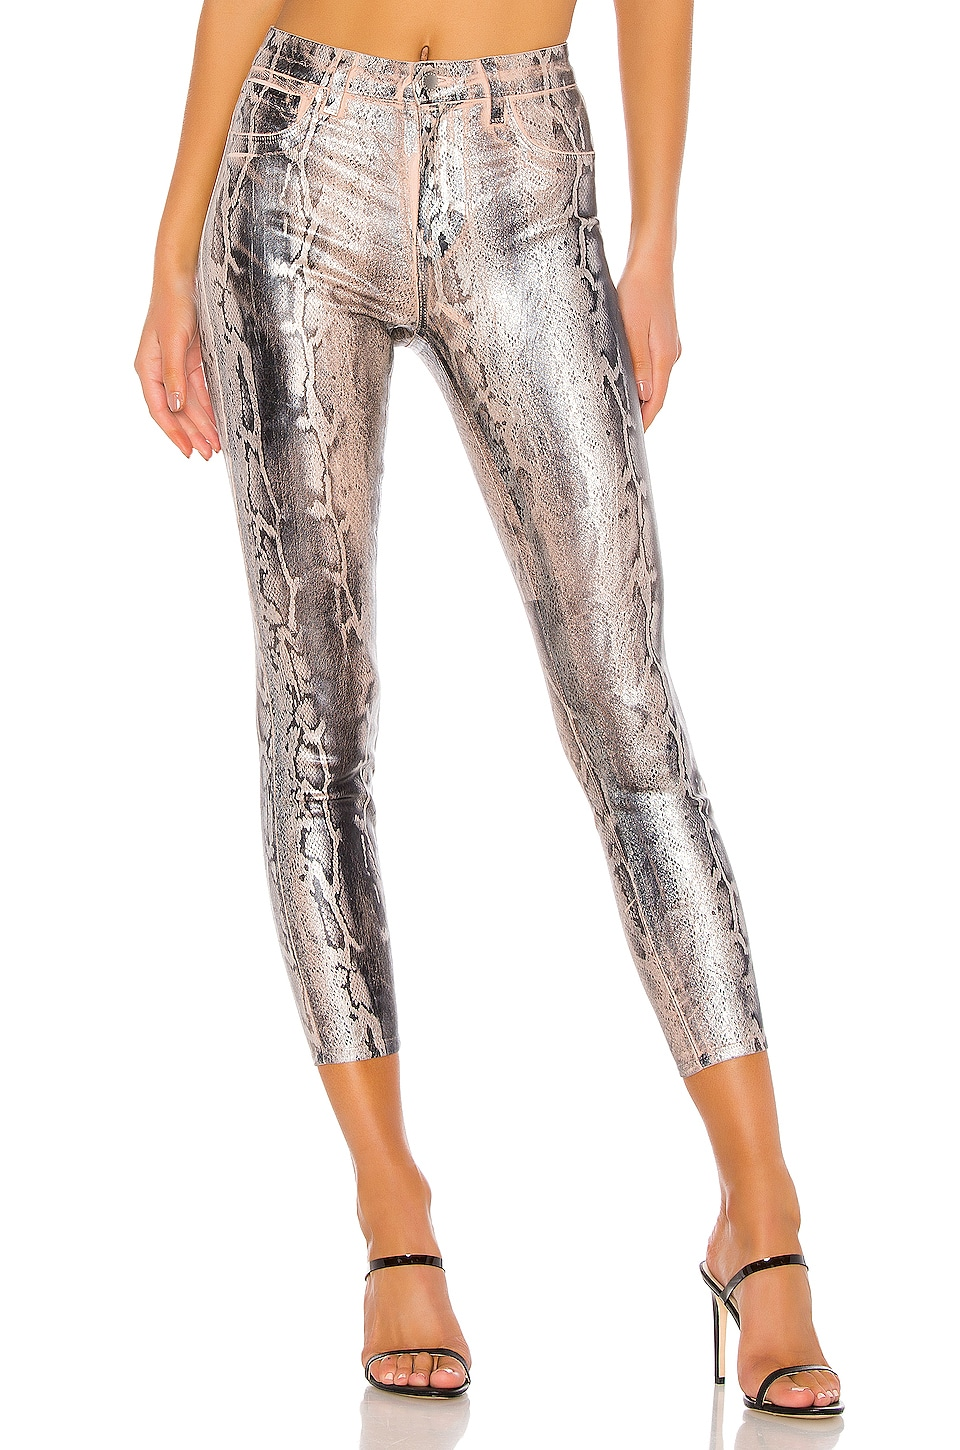 L'AGENCE Margot High Rise Skinny in Petal/Black Snake Skin